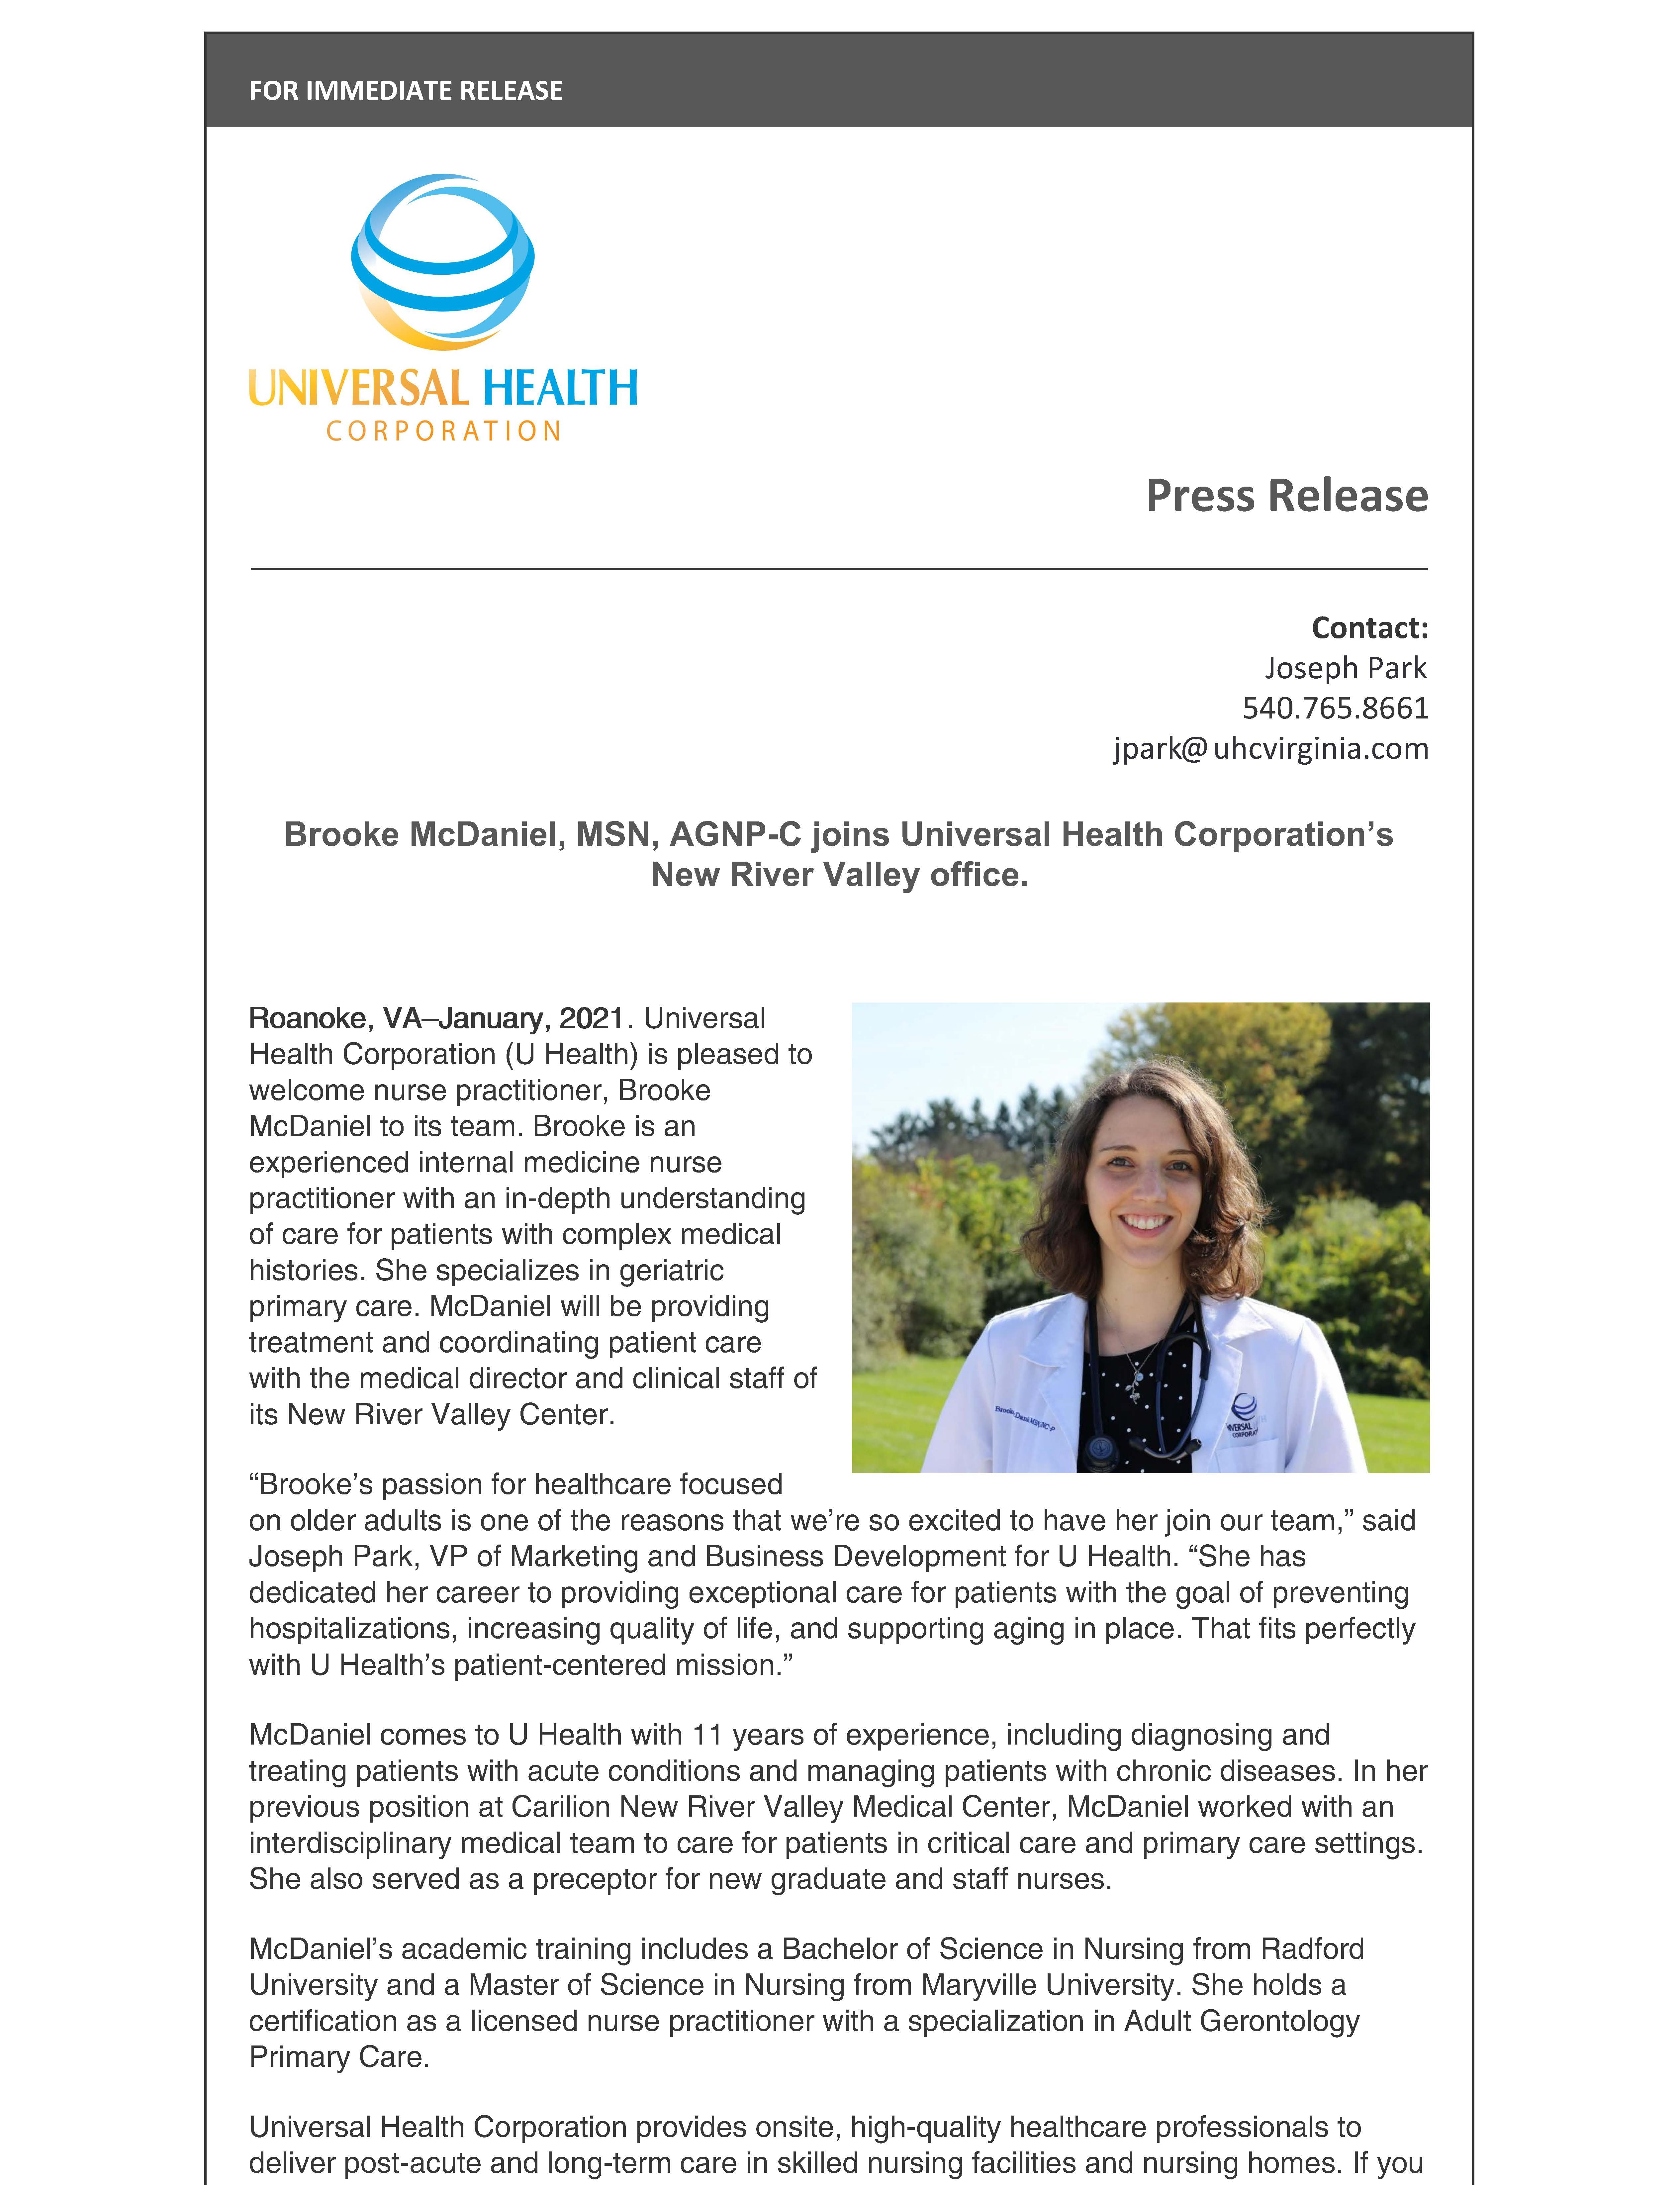 Press Release: Brooke McDaniel, MSN, AGNP-C joins Universal Health Corporation's New River Valley office.